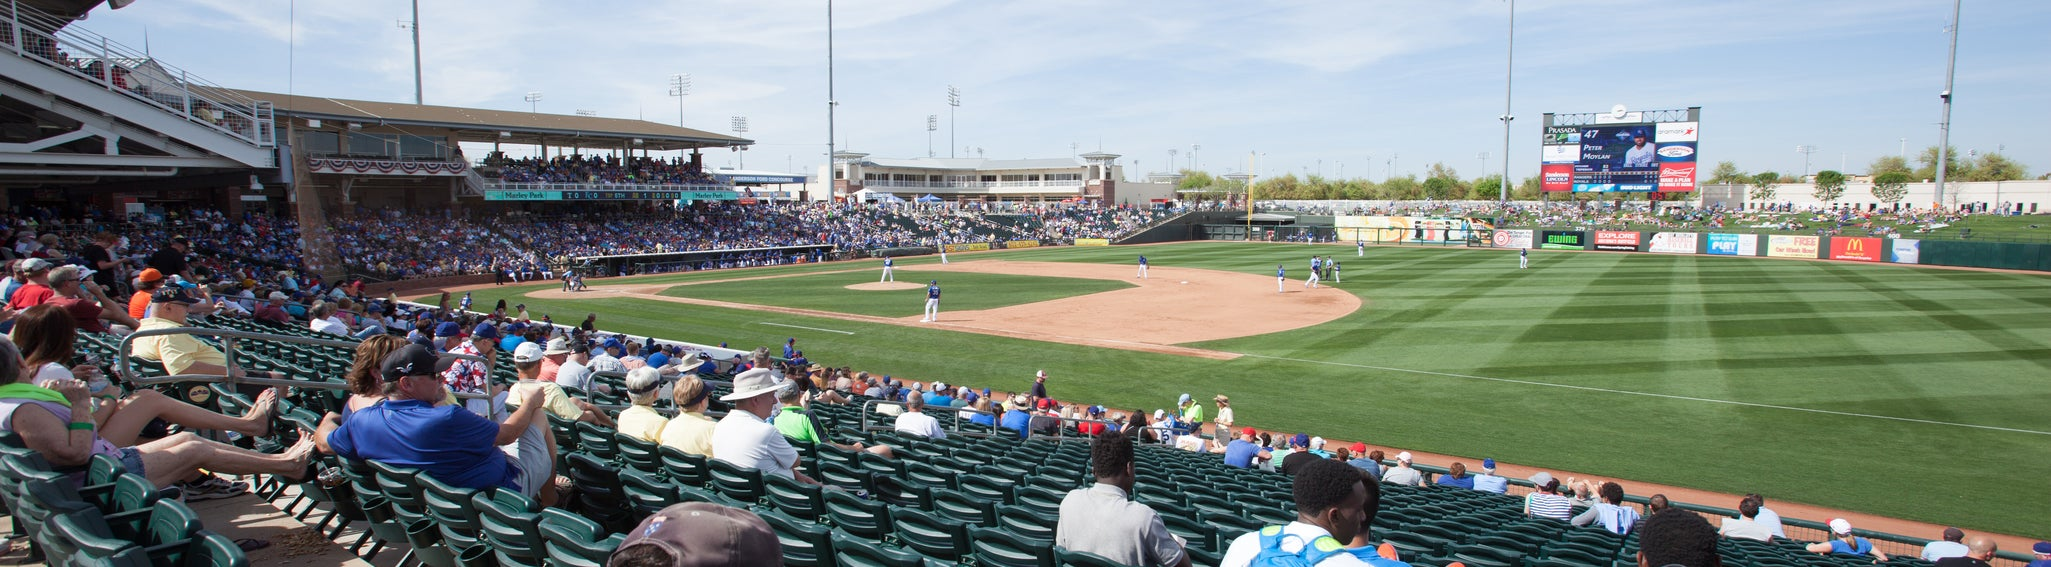 Seat view from Infield